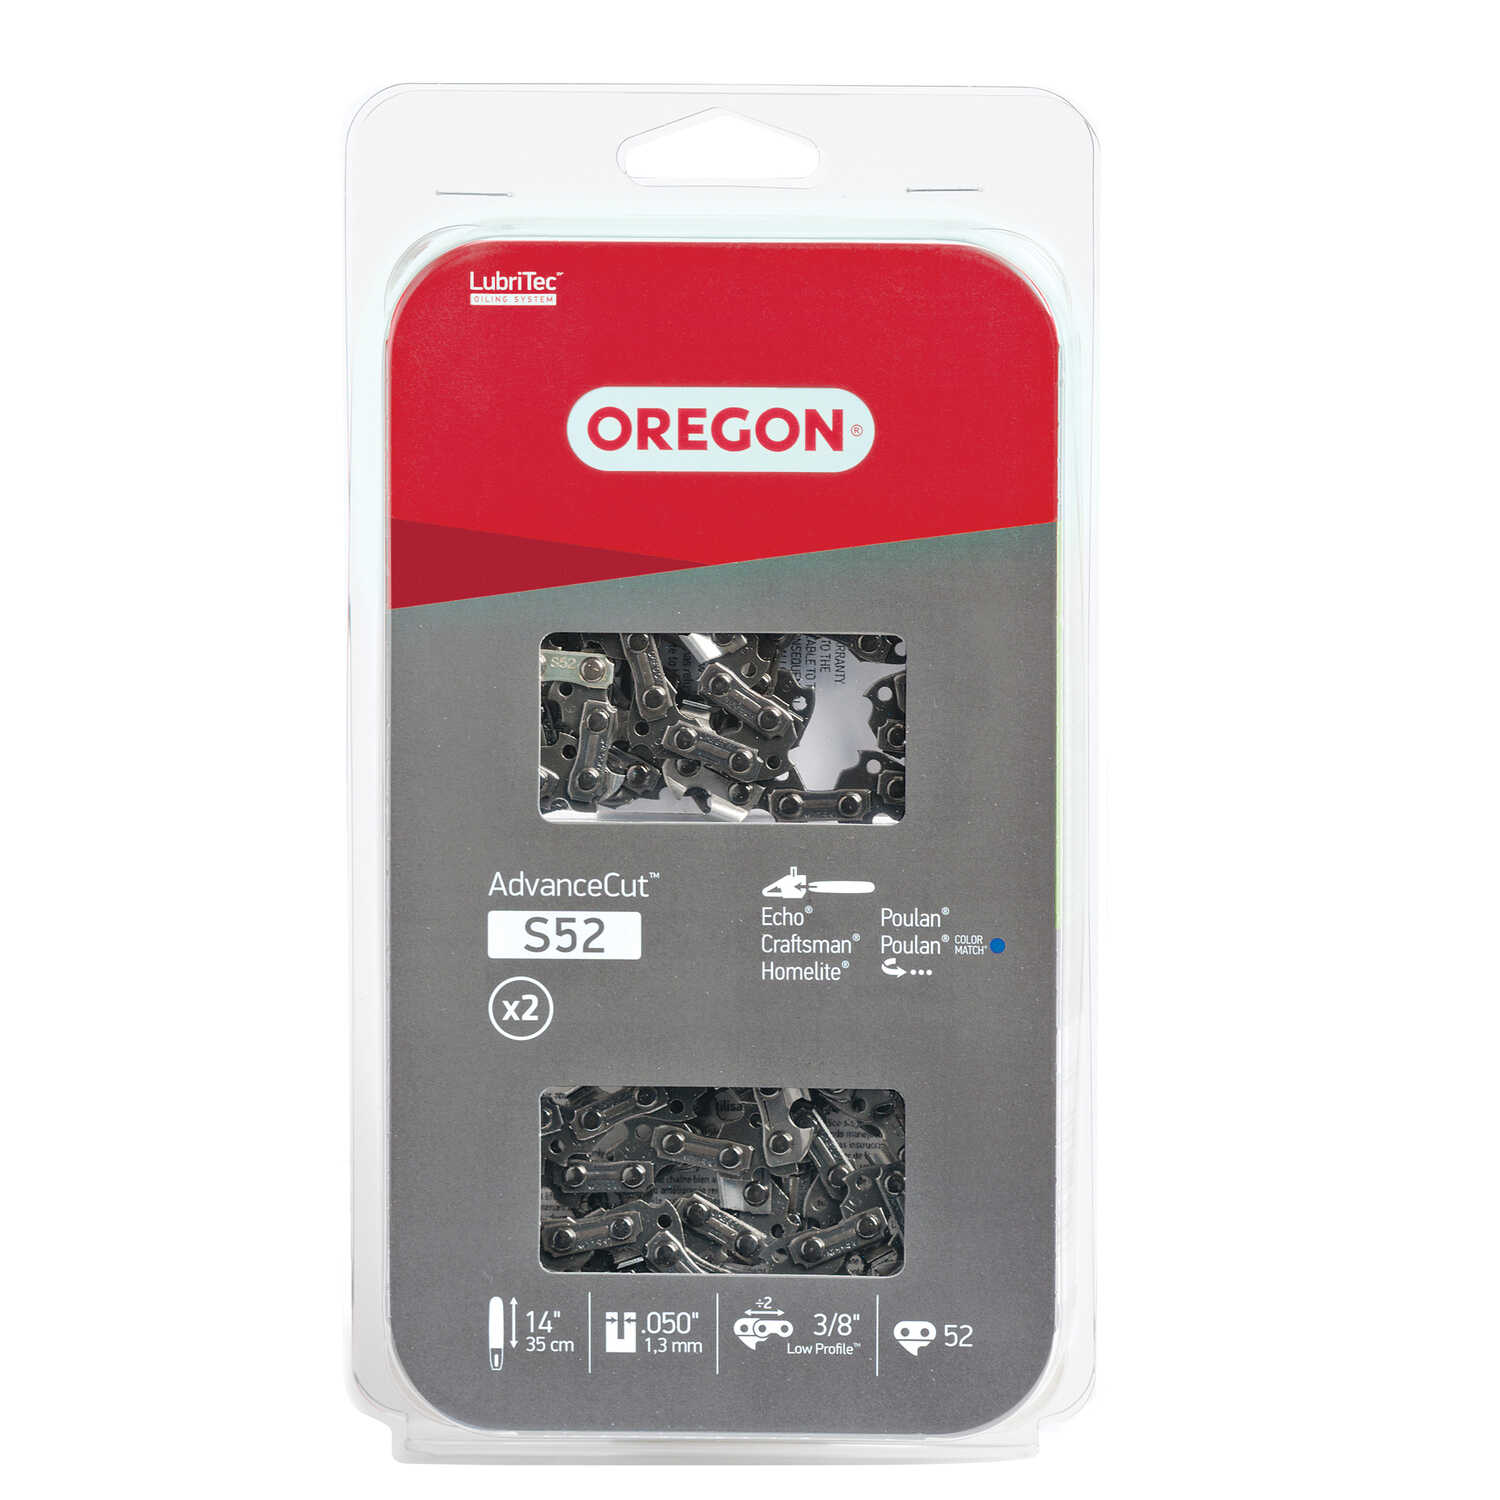 Oregon  Advance Cut  14 in. 52 links Chainsaw Chain